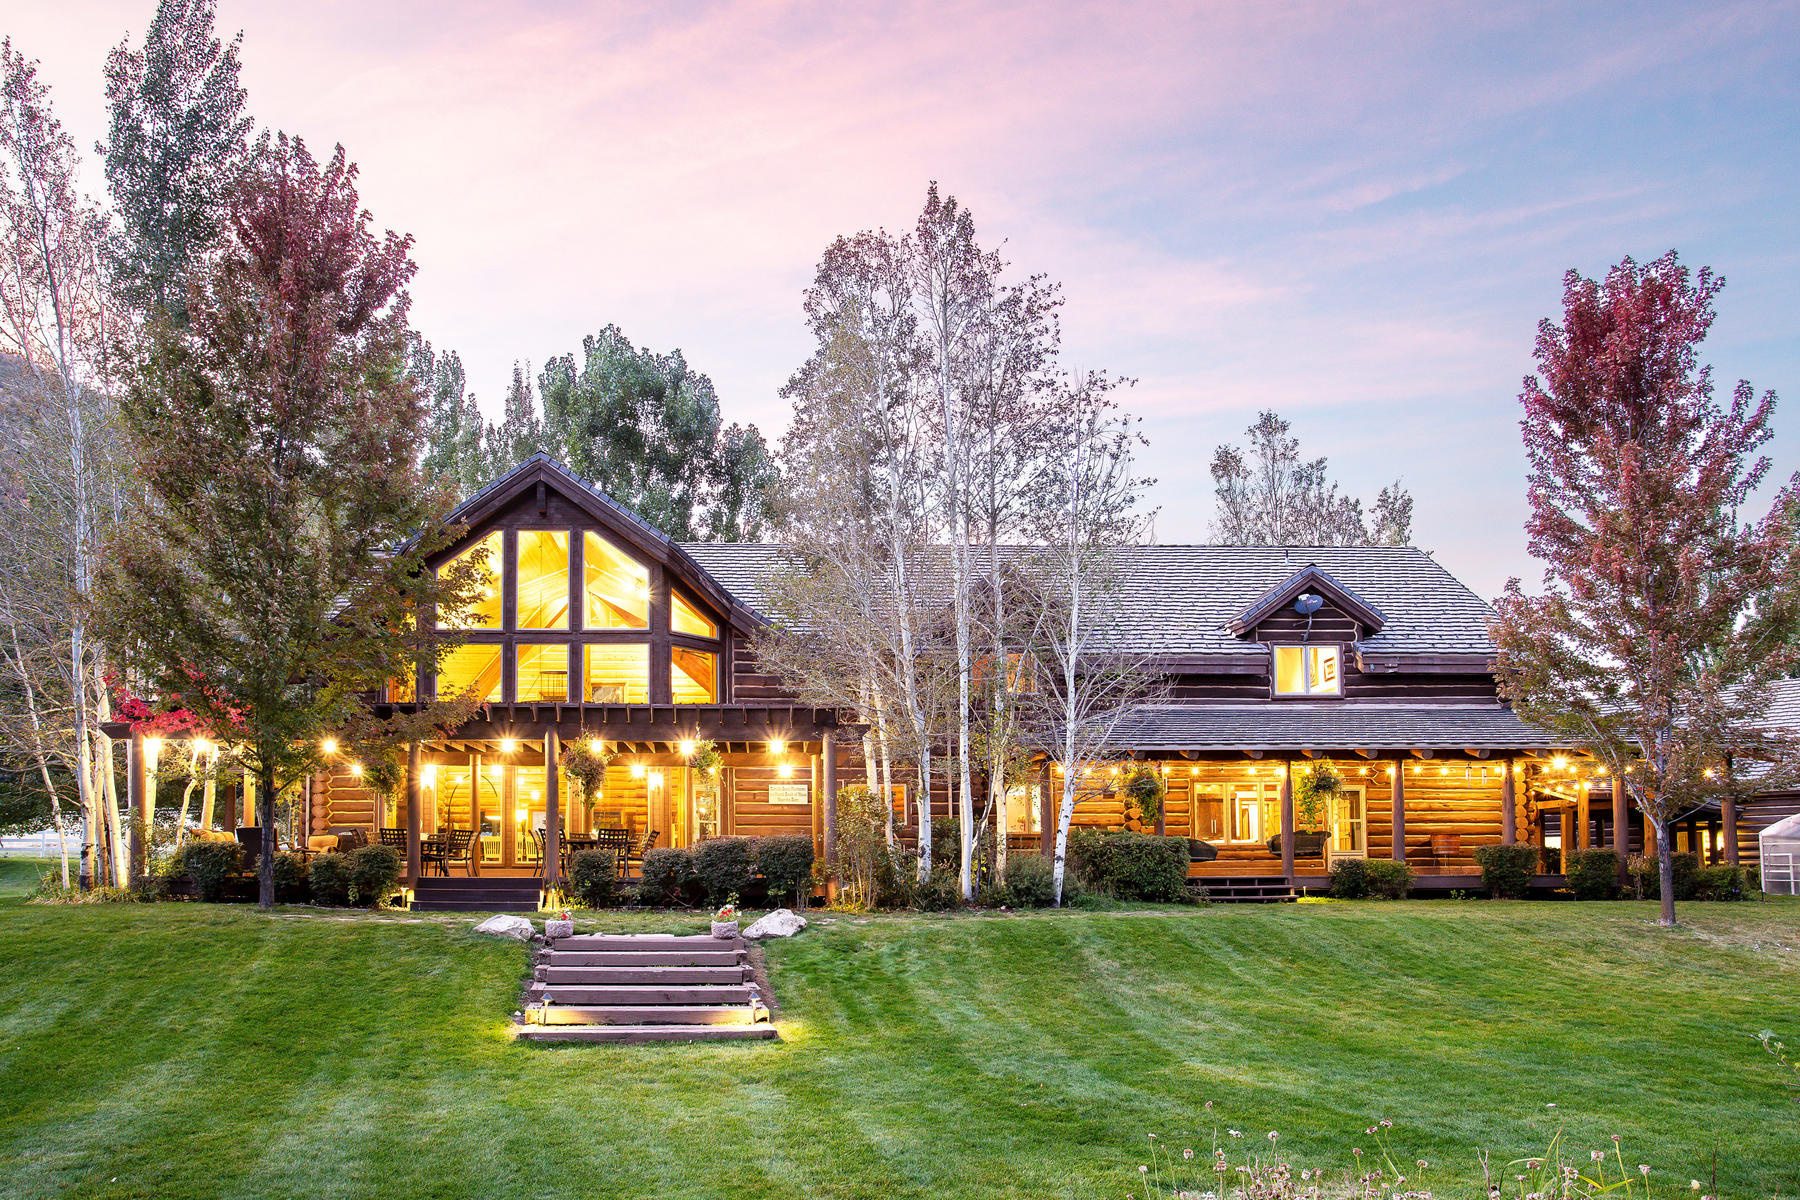 Single Family Homes for Active at The Hobble Creek Lodge 693 Hobble Creek Canyon Springville, Utah 84663 United States